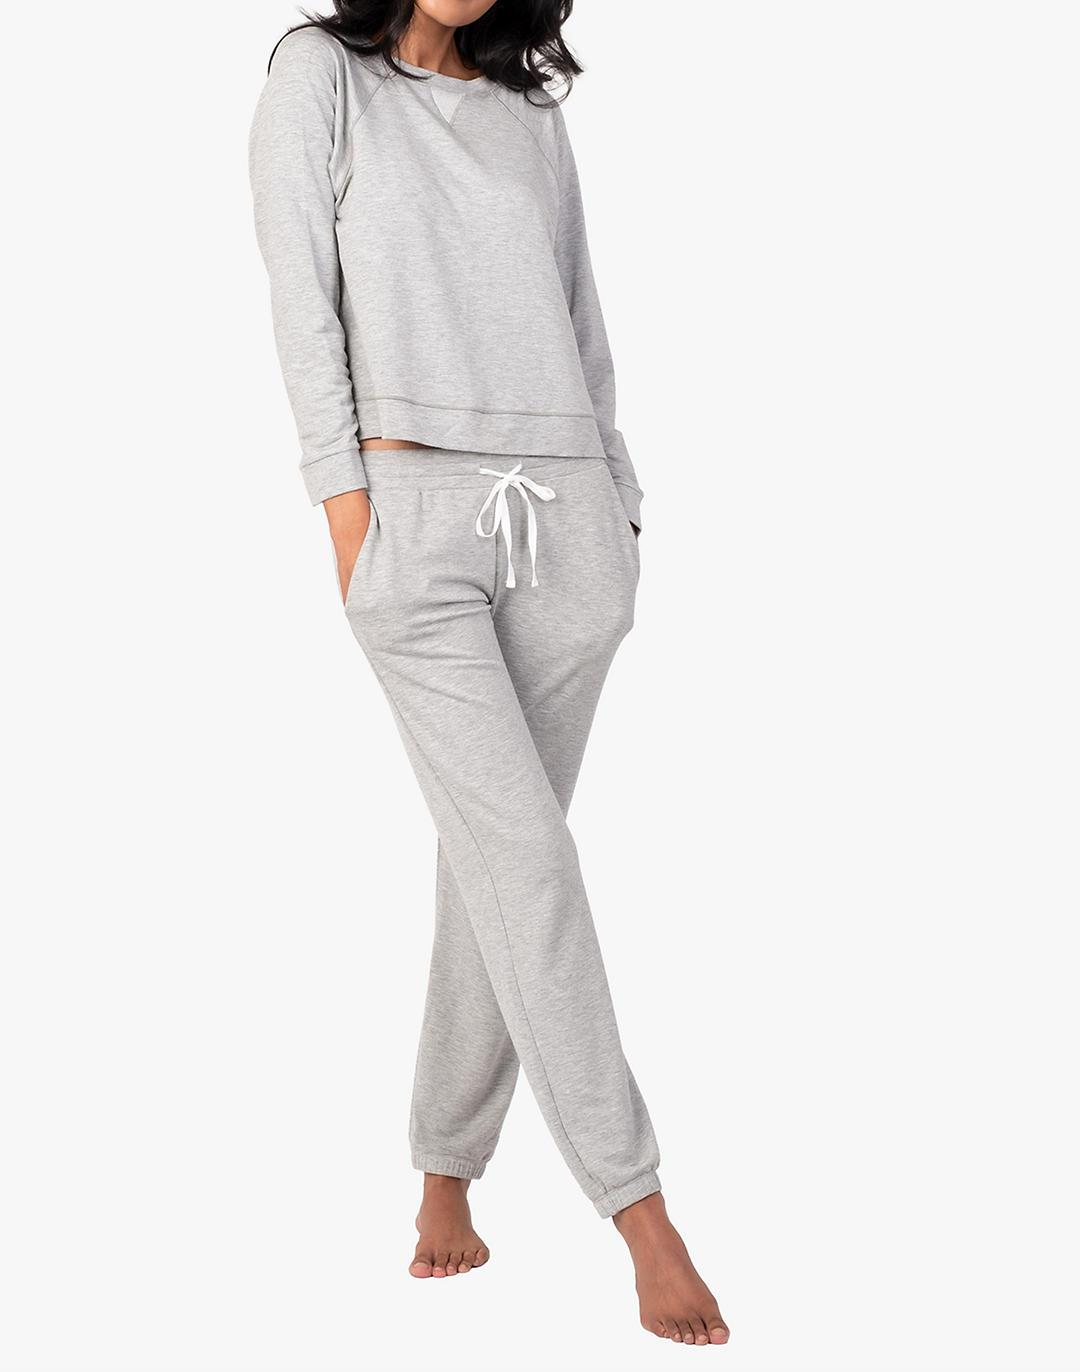 LIVELY The Terry-Soft Jogger